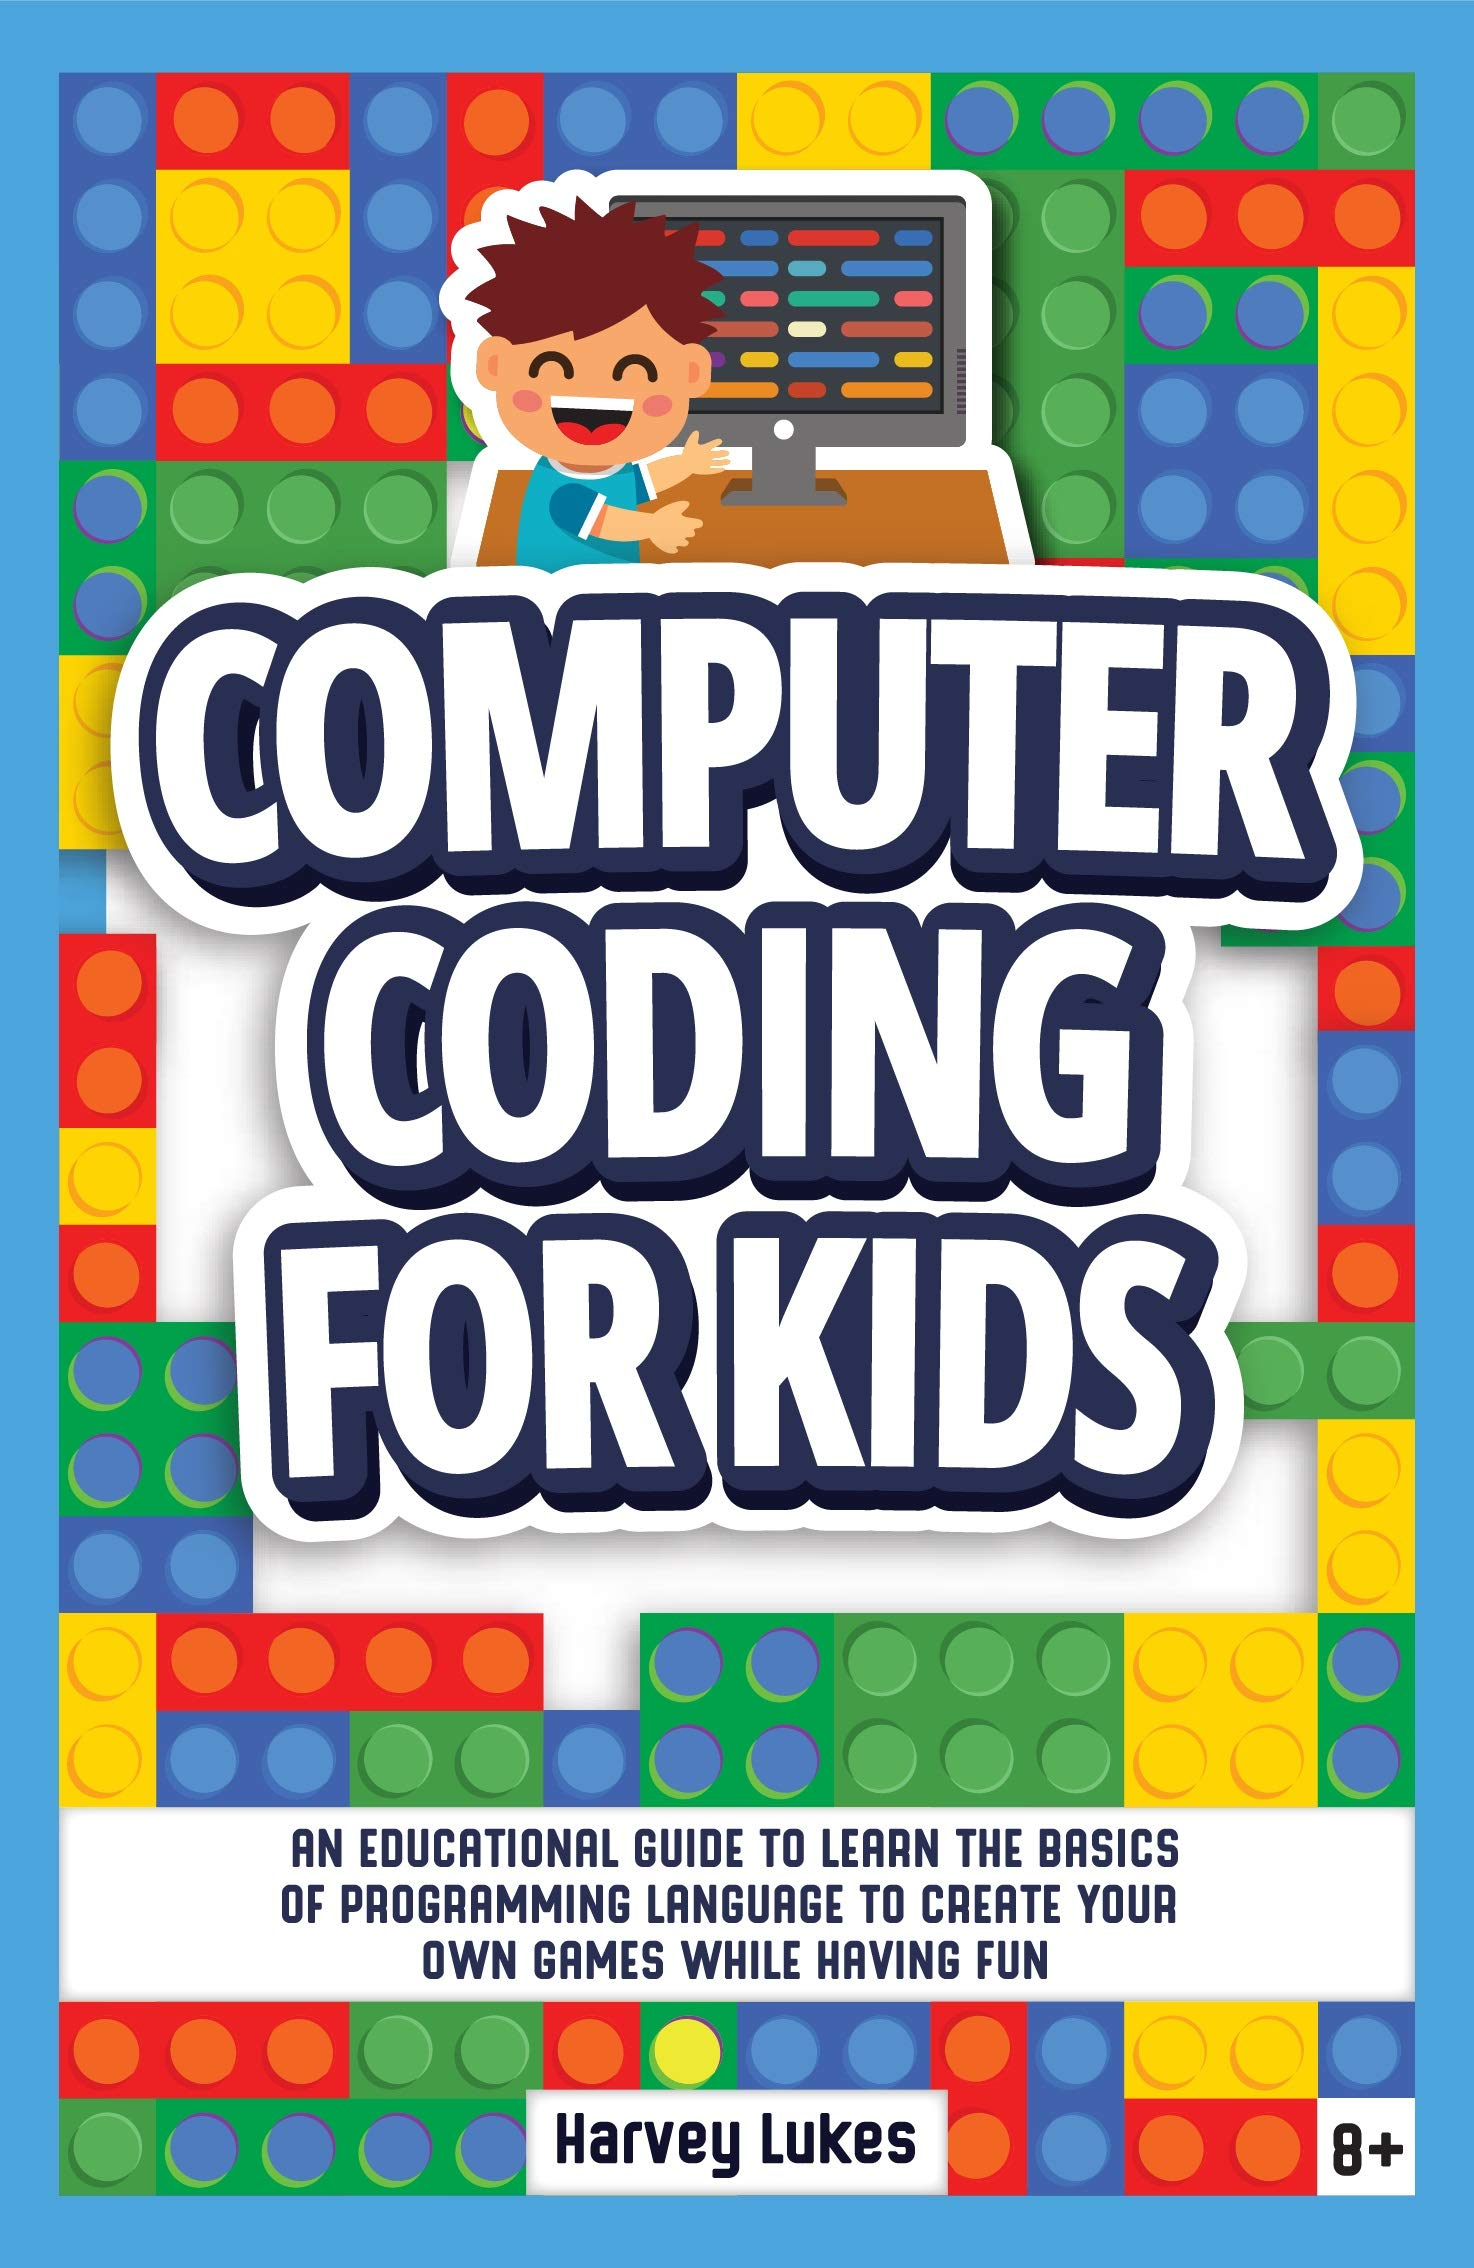 Computer Coding for Kids: An Educational Guide to Learn the basics of Programming Language to create your Own Games while having Fun